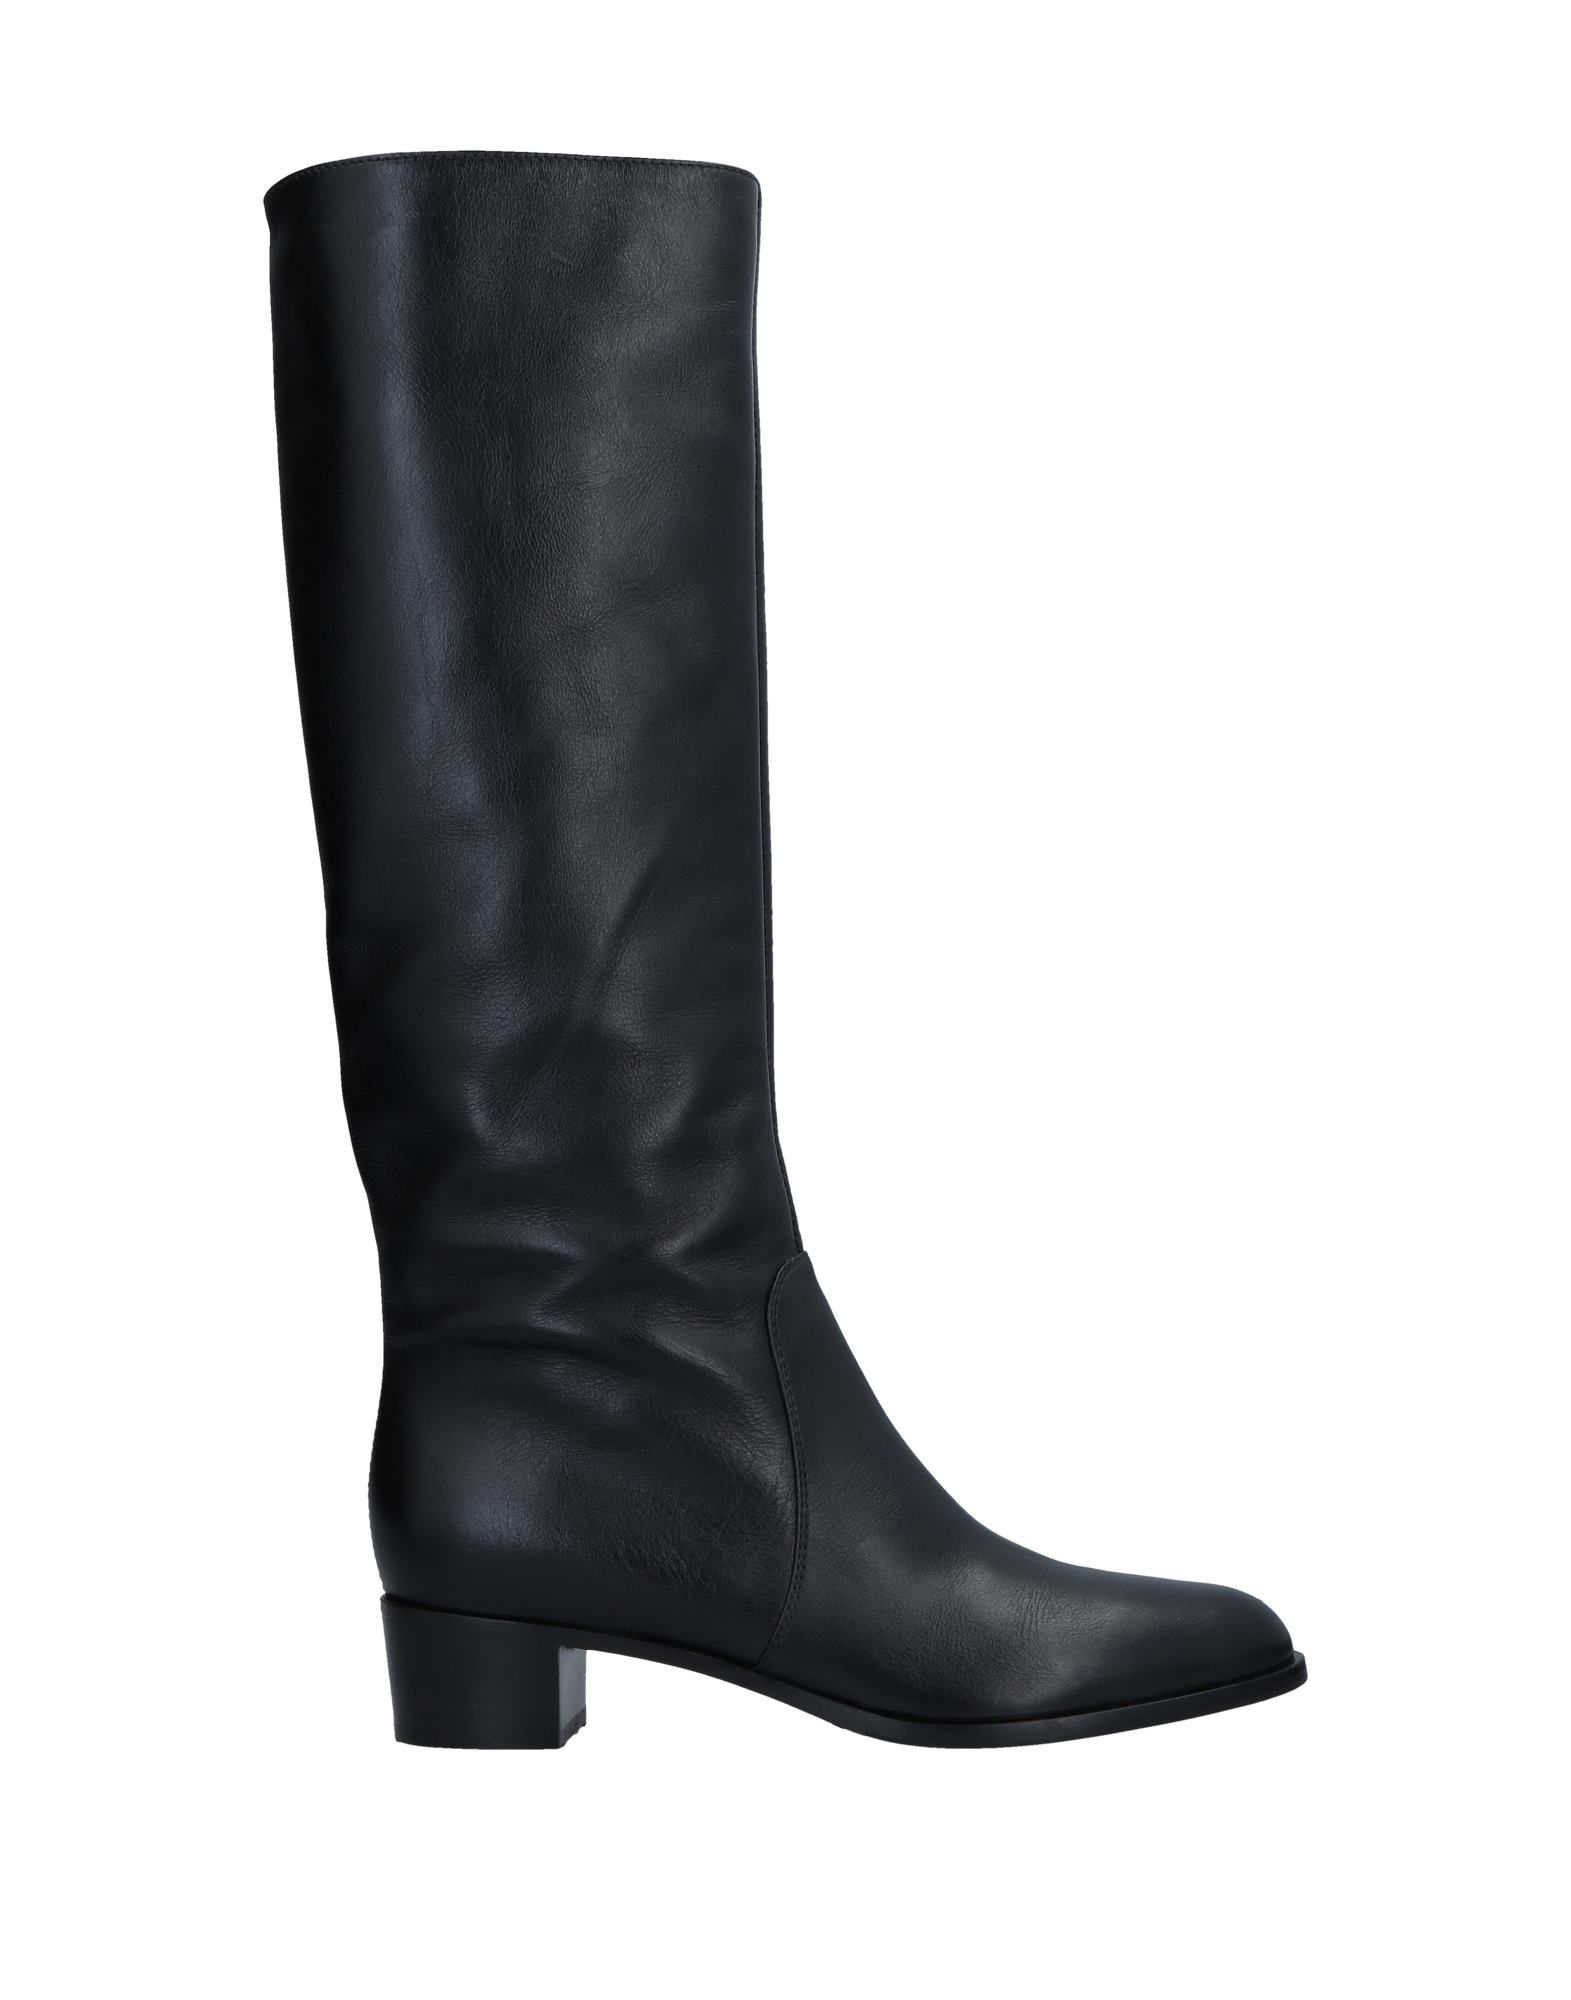 Sergio Rossi Boots - Women Sergio Rossi Boots online on 11526138NT  United Kingdom - 11526138NT on 96d8de